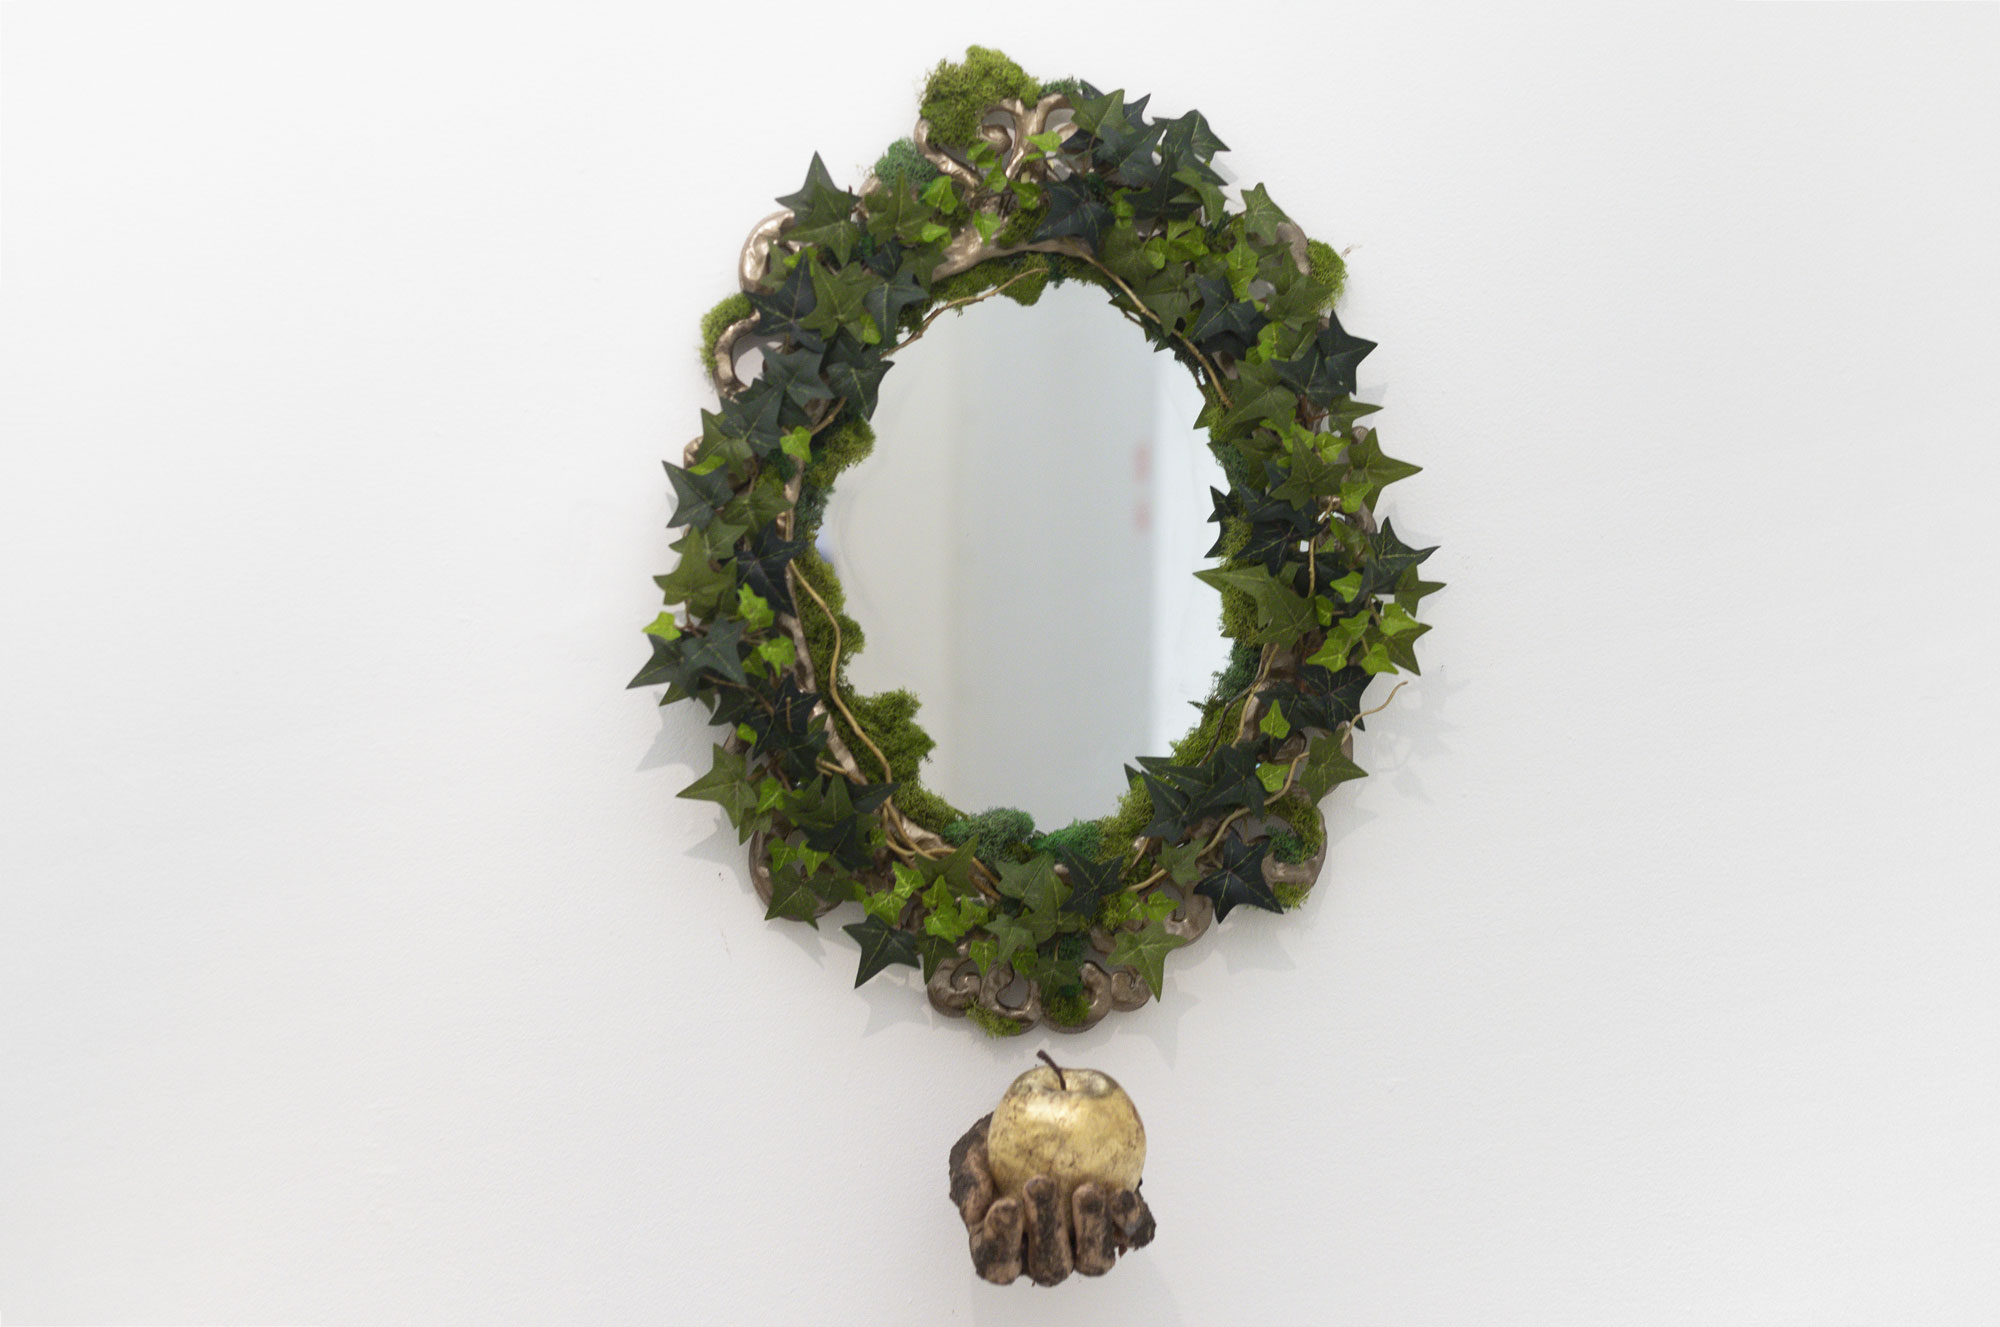 A round ornate gold mirror covered in artificial ivy and moss, below the mirror is a hand facing the viewer holding a golden apple. The hand is covered in dirt.